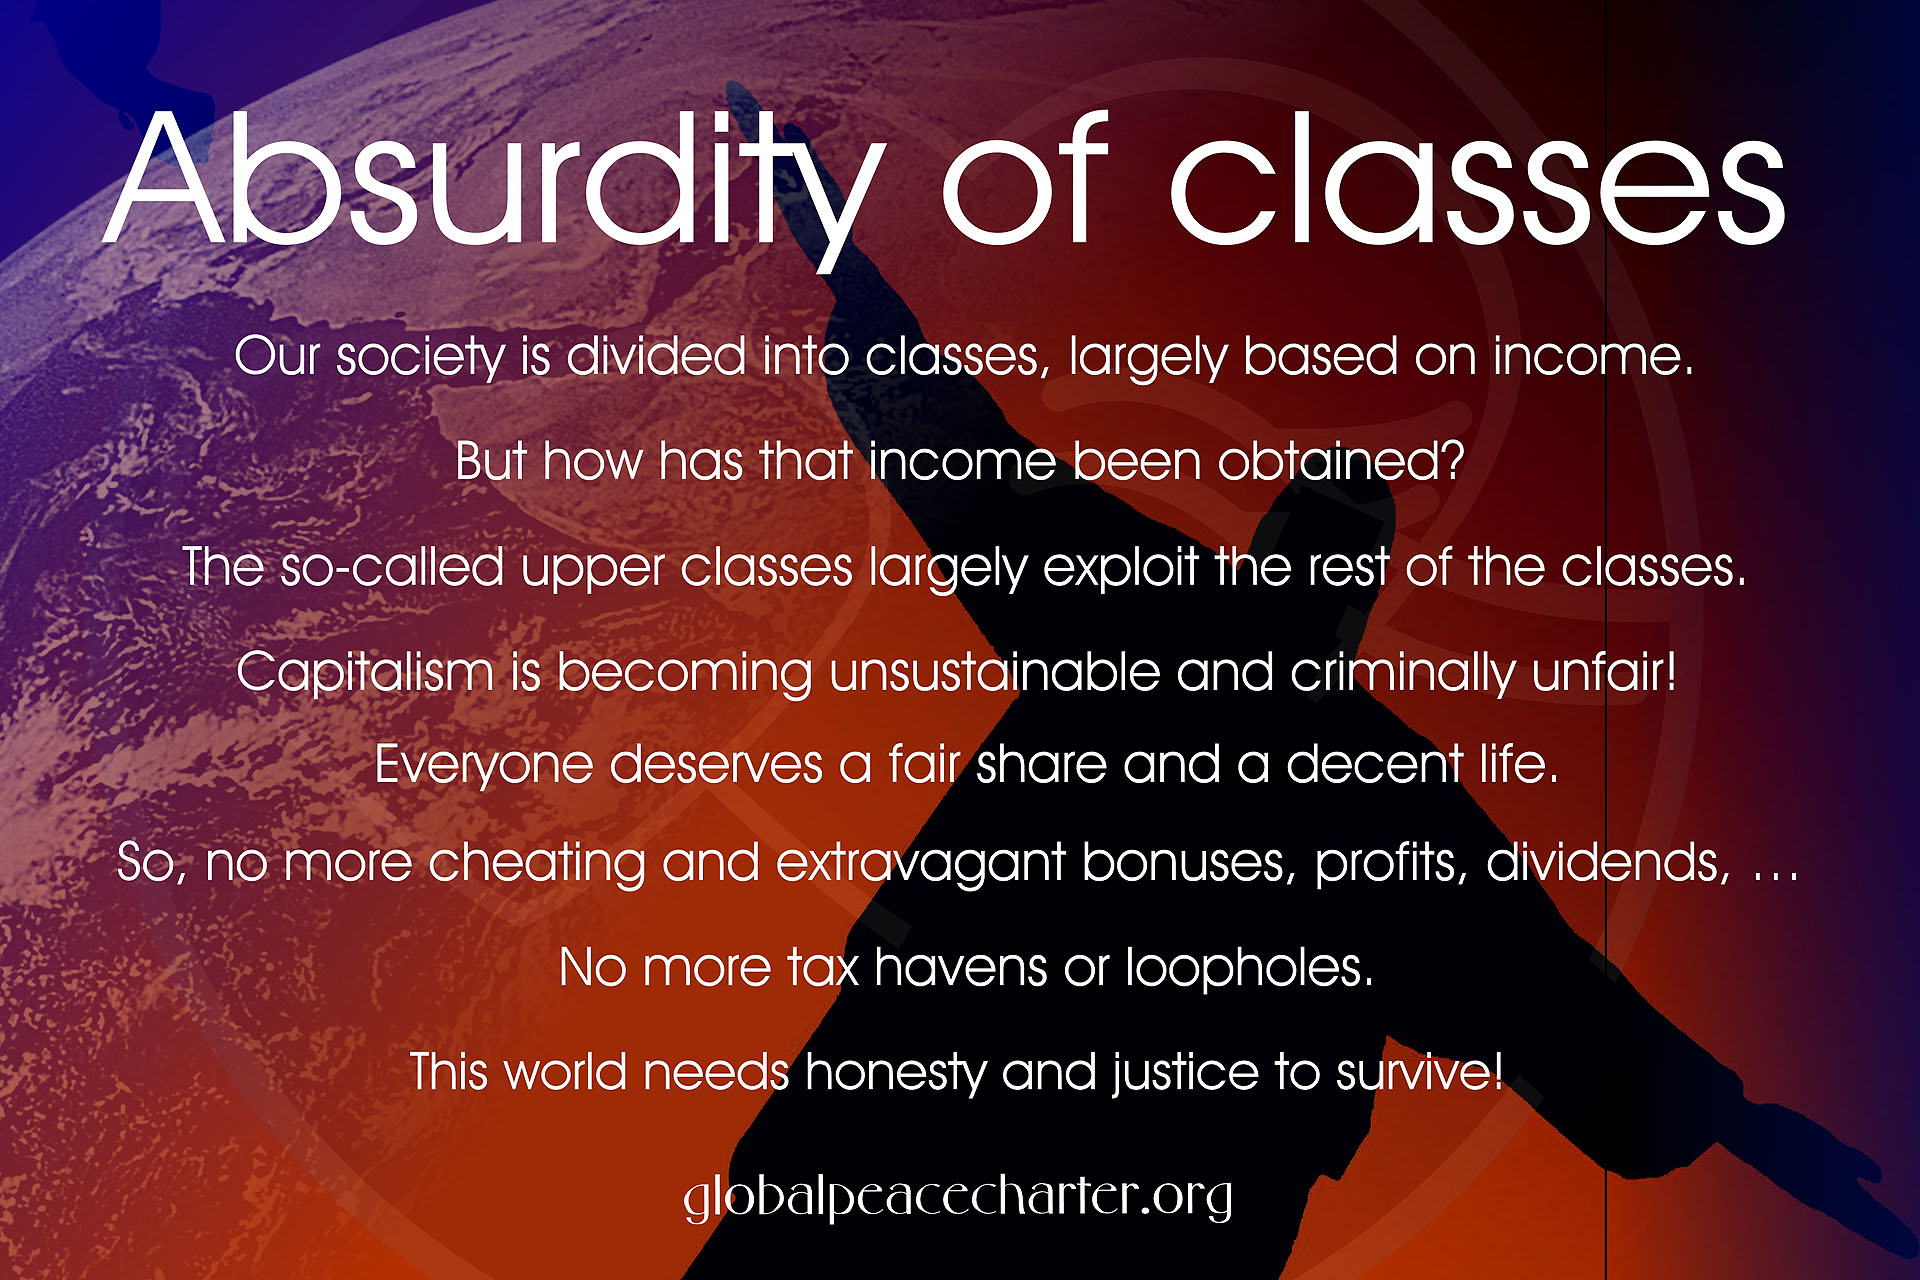 Absurdity of classes